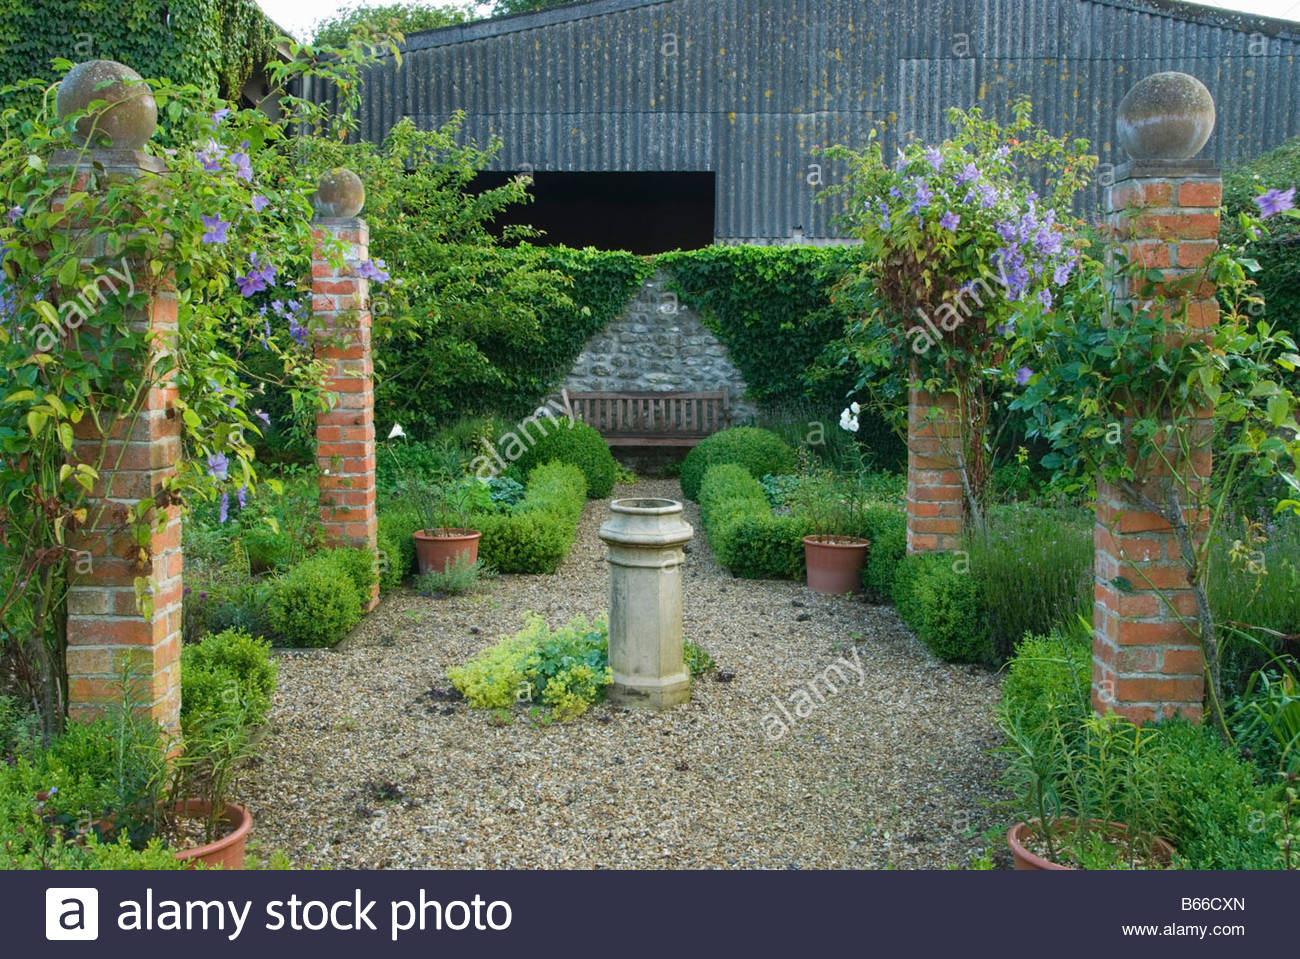 Courtyard Garden Defined With Brick Pillars Hosting Rosa Climbing